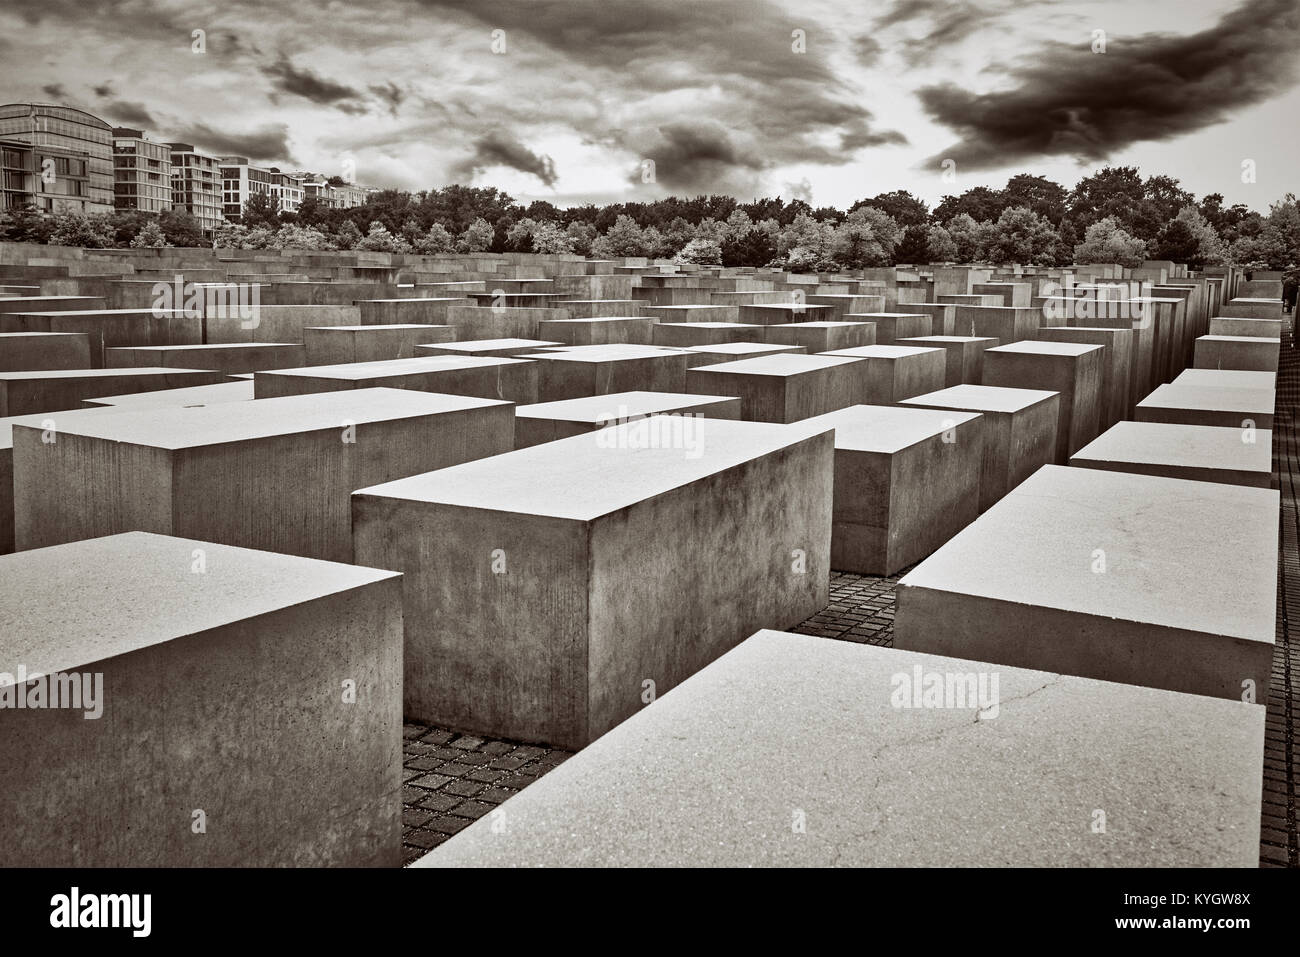 Berlin, Memorial to the Murdered Jews of Europe,suggestive winter atmosphere - Stock Image